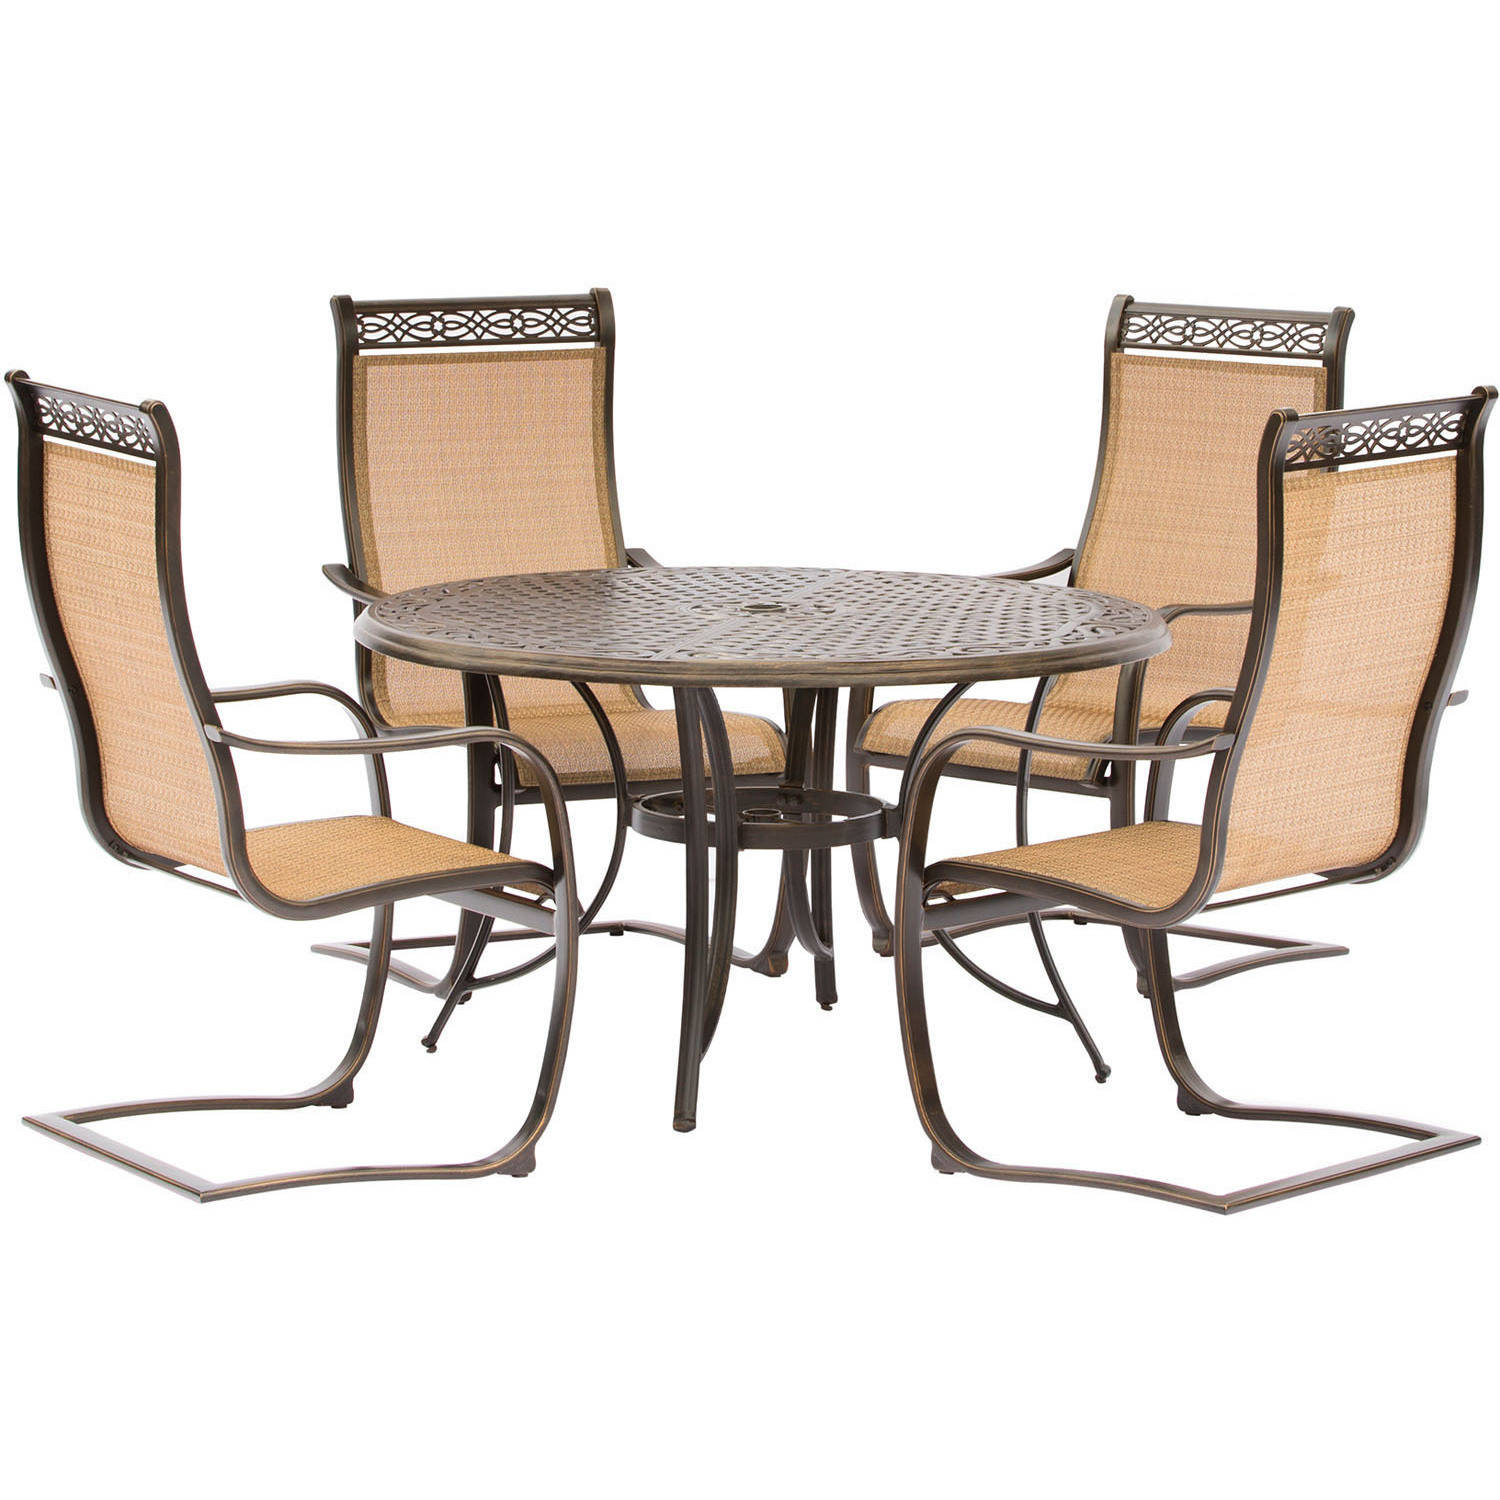 Hanover Manor 5-Piece Outdoor Dining Room Set with C-Spring Chairs by Hanover